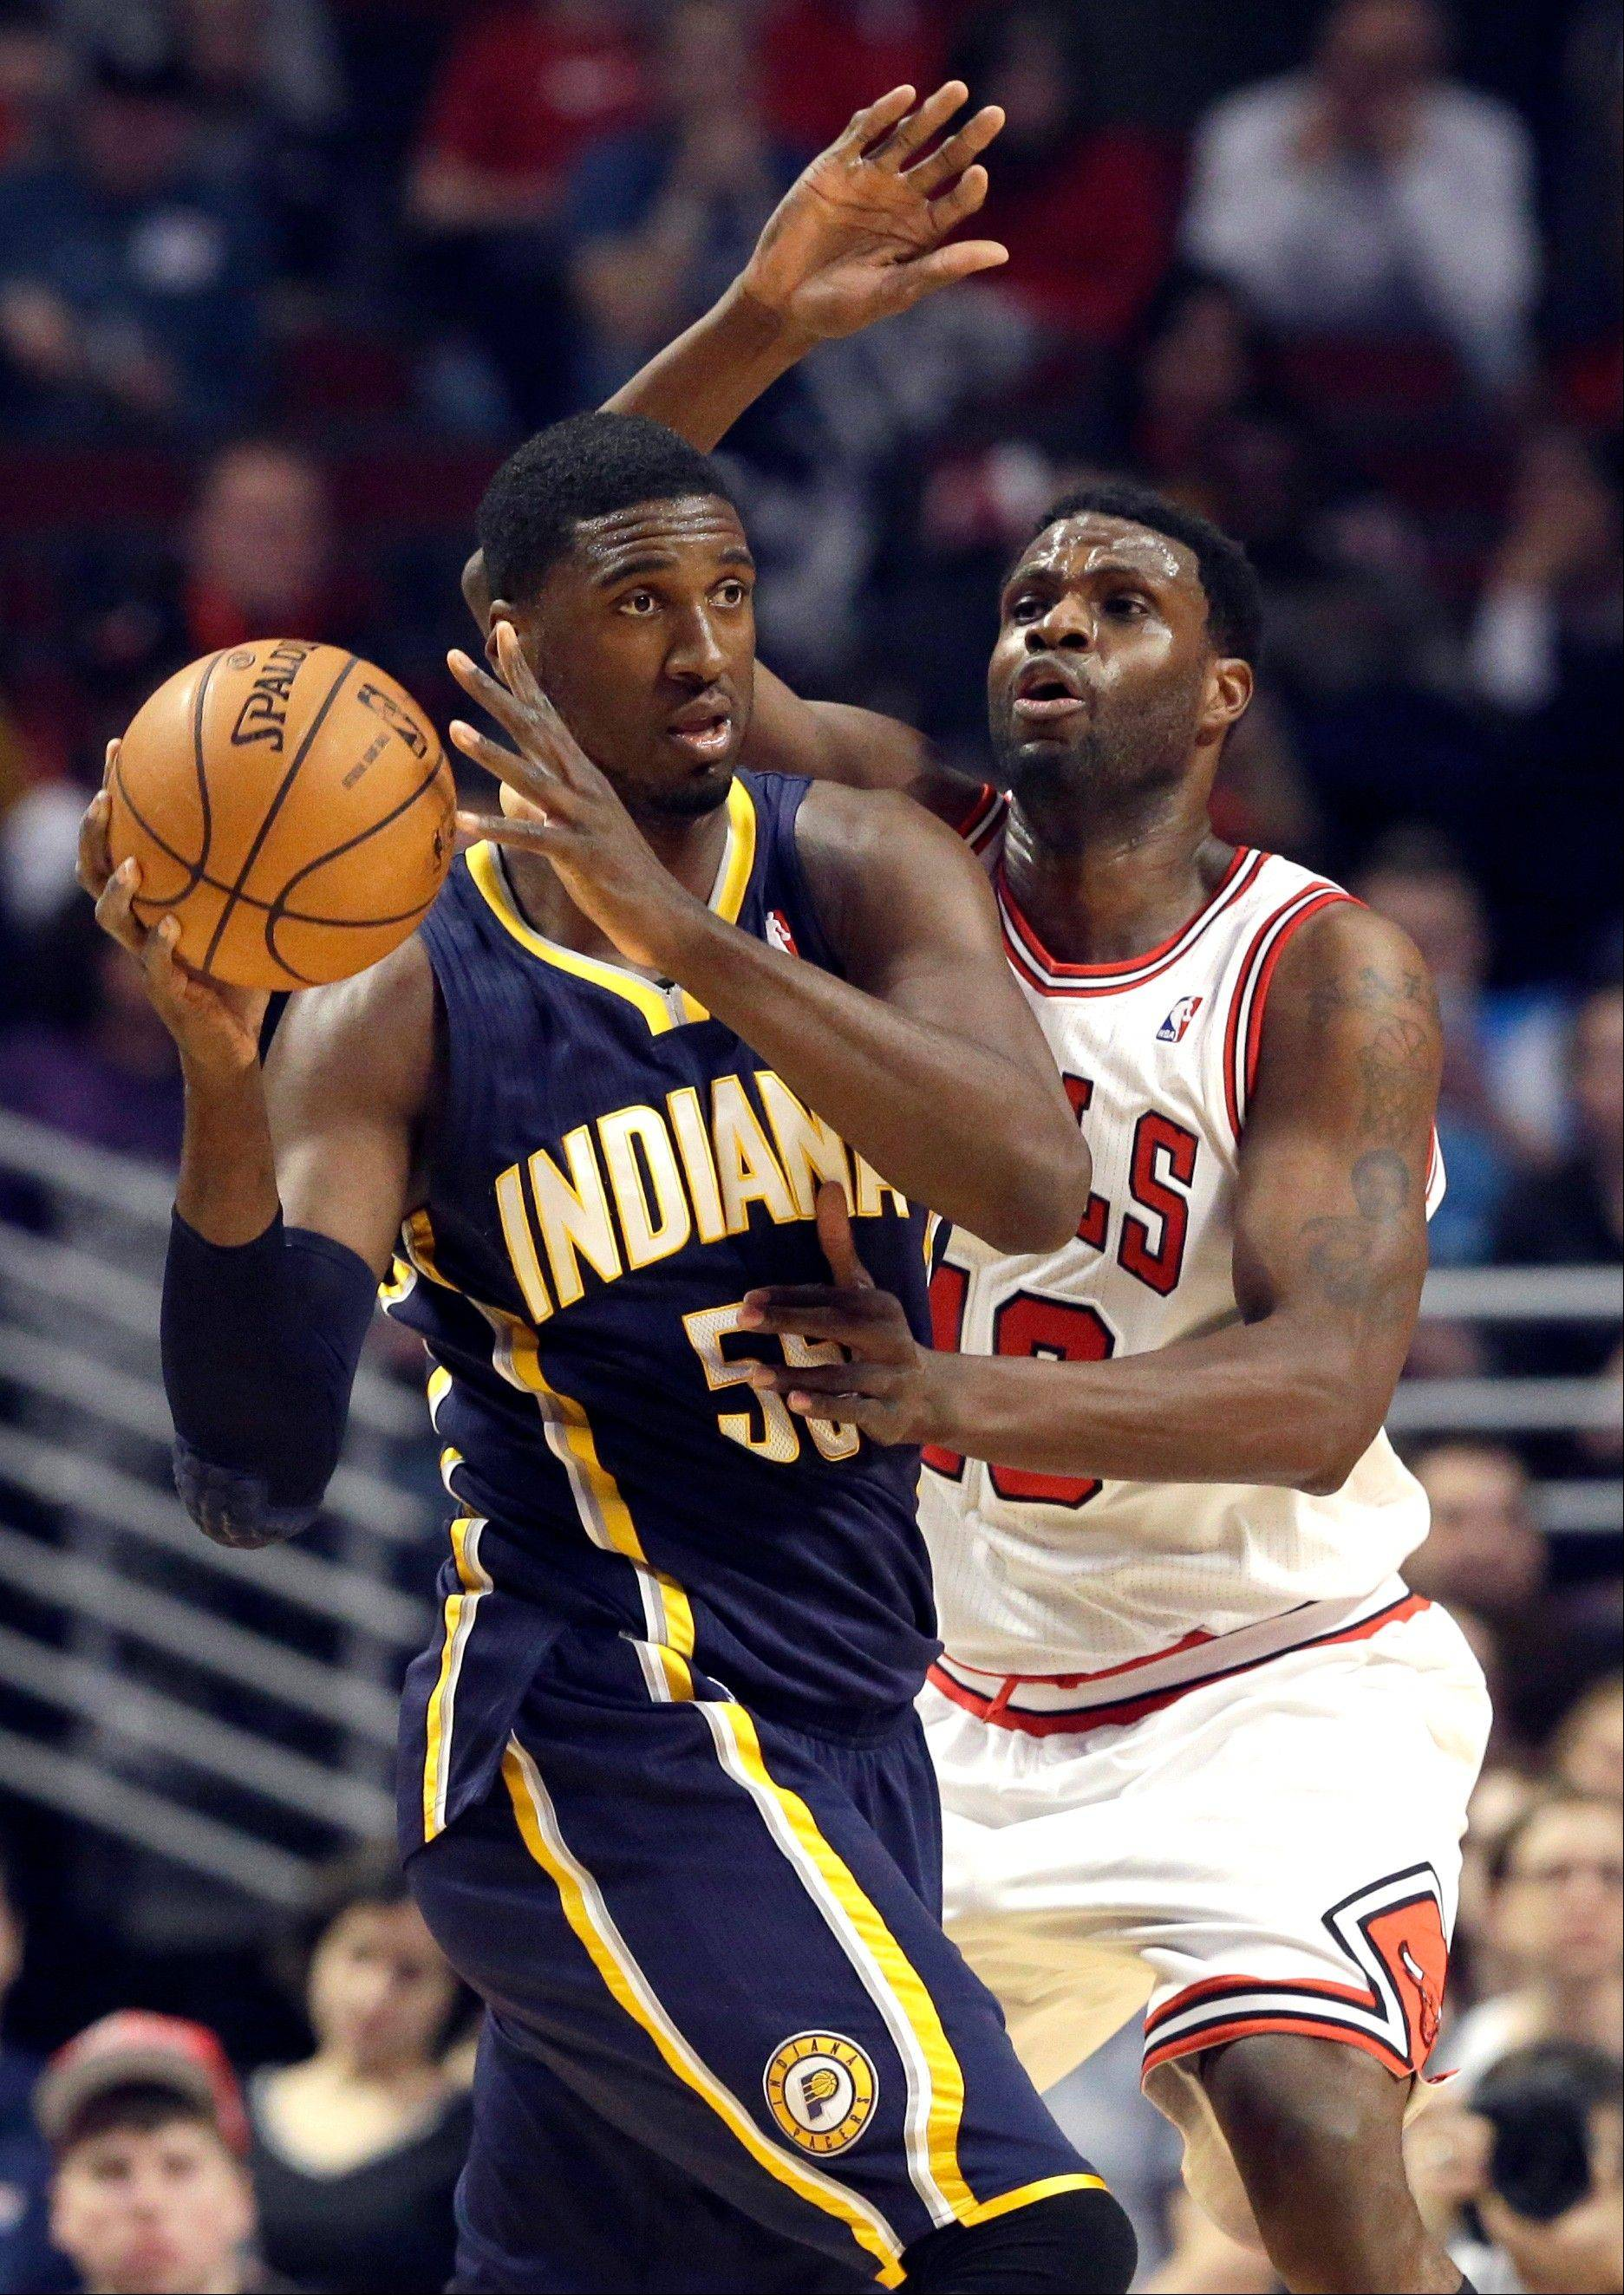 Bulls show they have enough to top Pacers